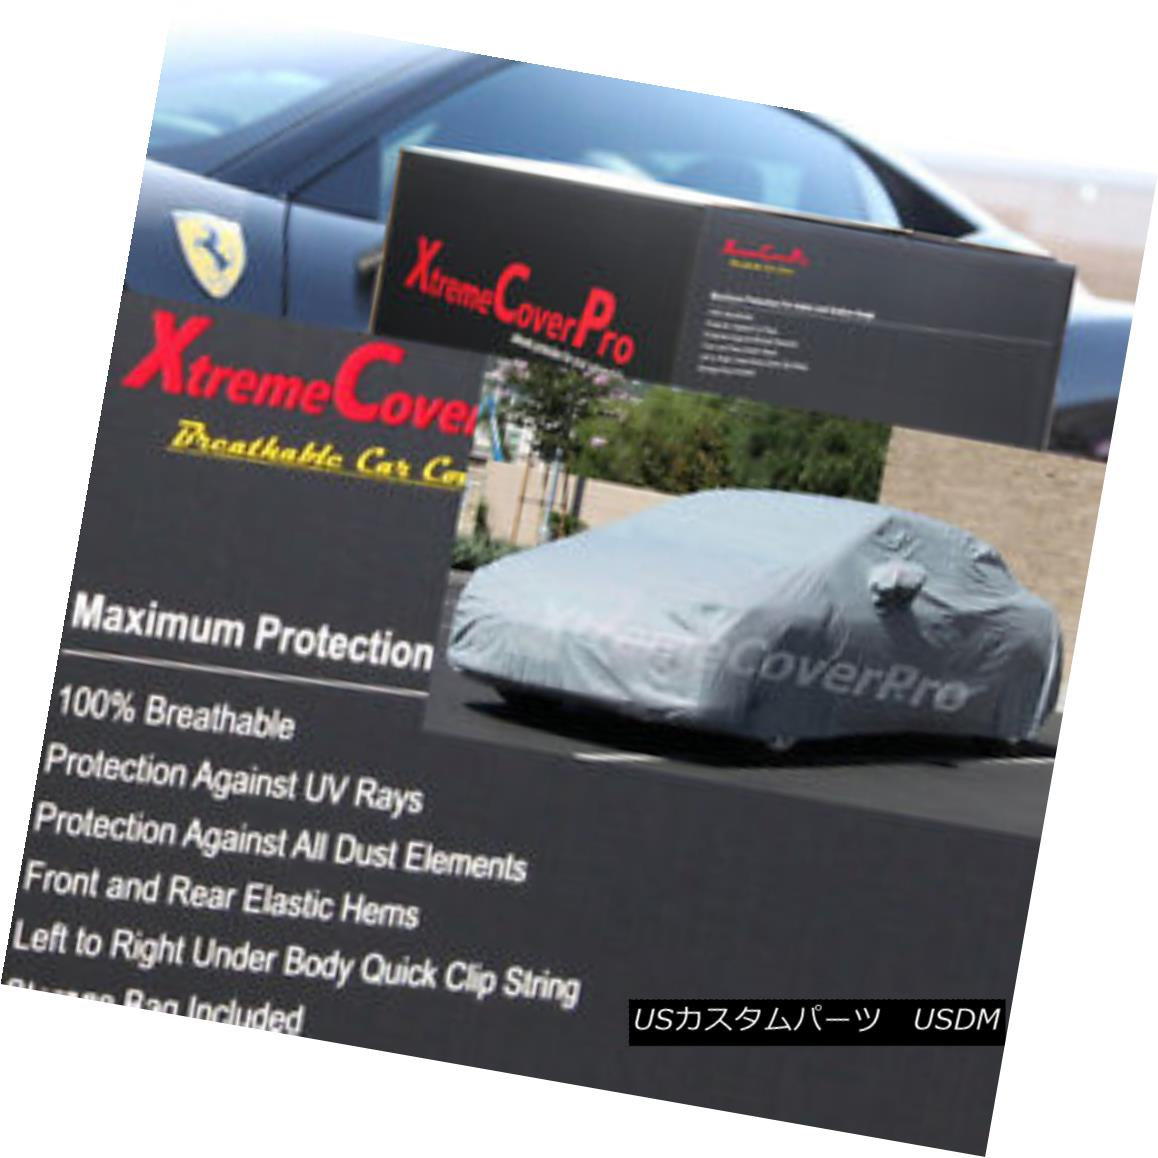 カーカバー 1990 1991 1992 Oldsmobile Royale Breathable Car Cover w/MirrorPocket 1990 1991 1992 Oldsmobile Royale通気性の車カバー、MirrorPocket付き